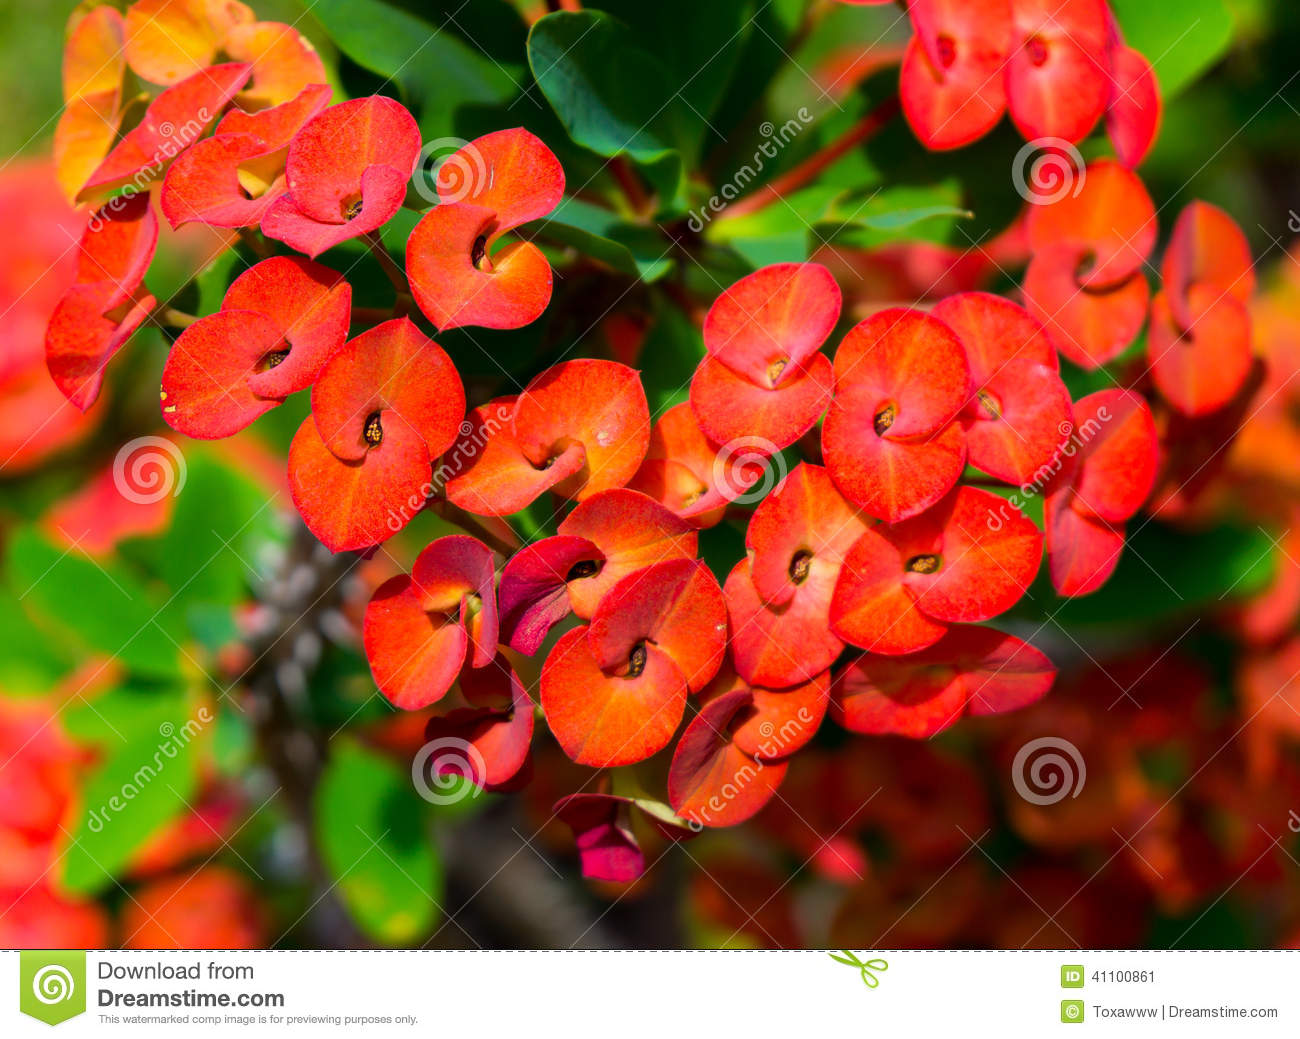 Tropical plants and flowers background stock image image of tropical plants and flowers background izmirmasajfo